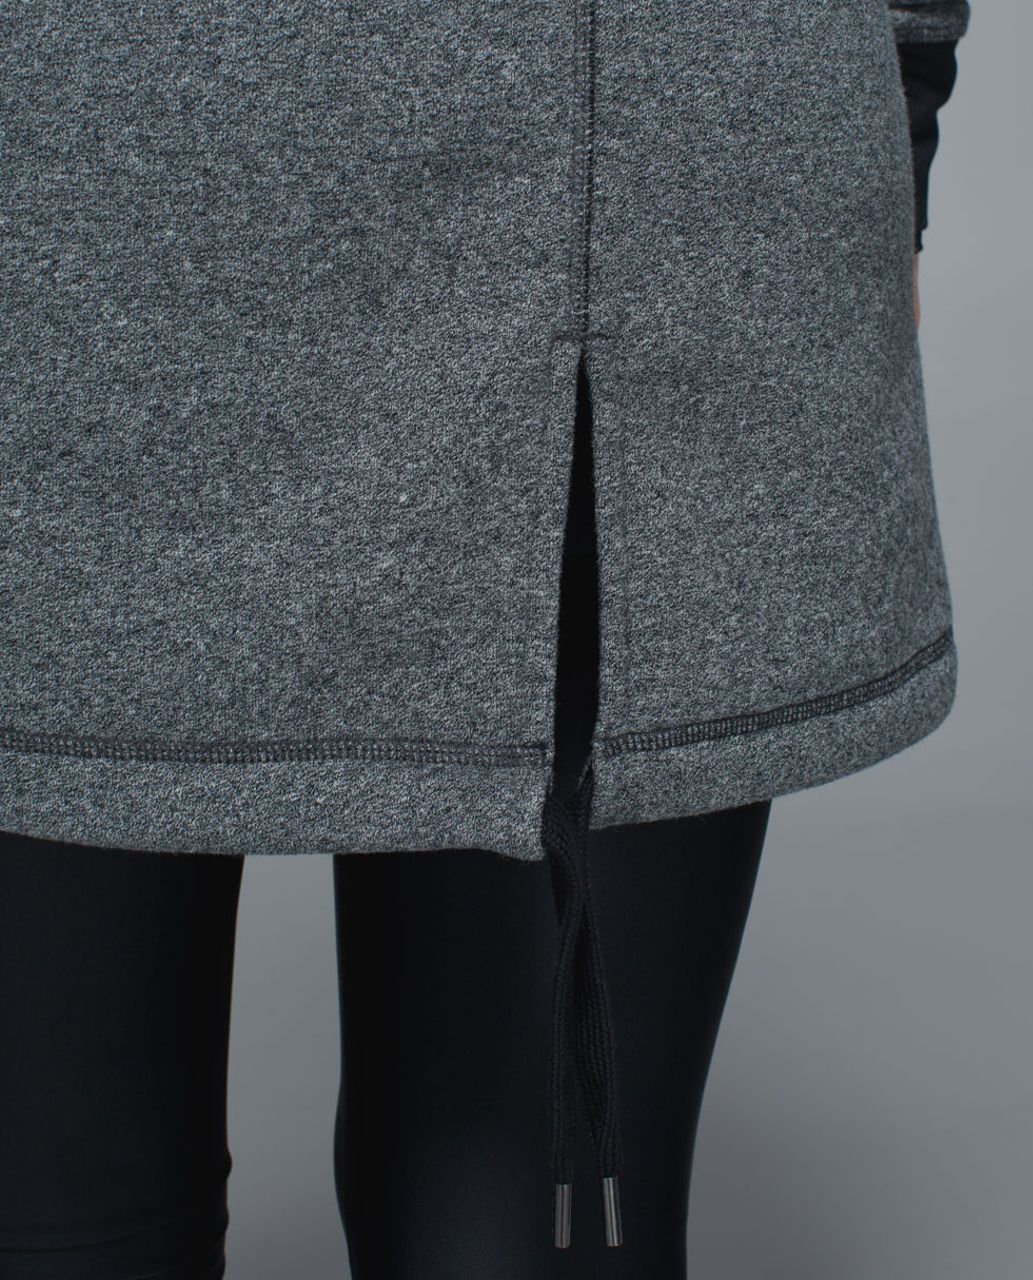 Lululemon Long & Short Of It Jacket - Heathered Speckled Black / Black